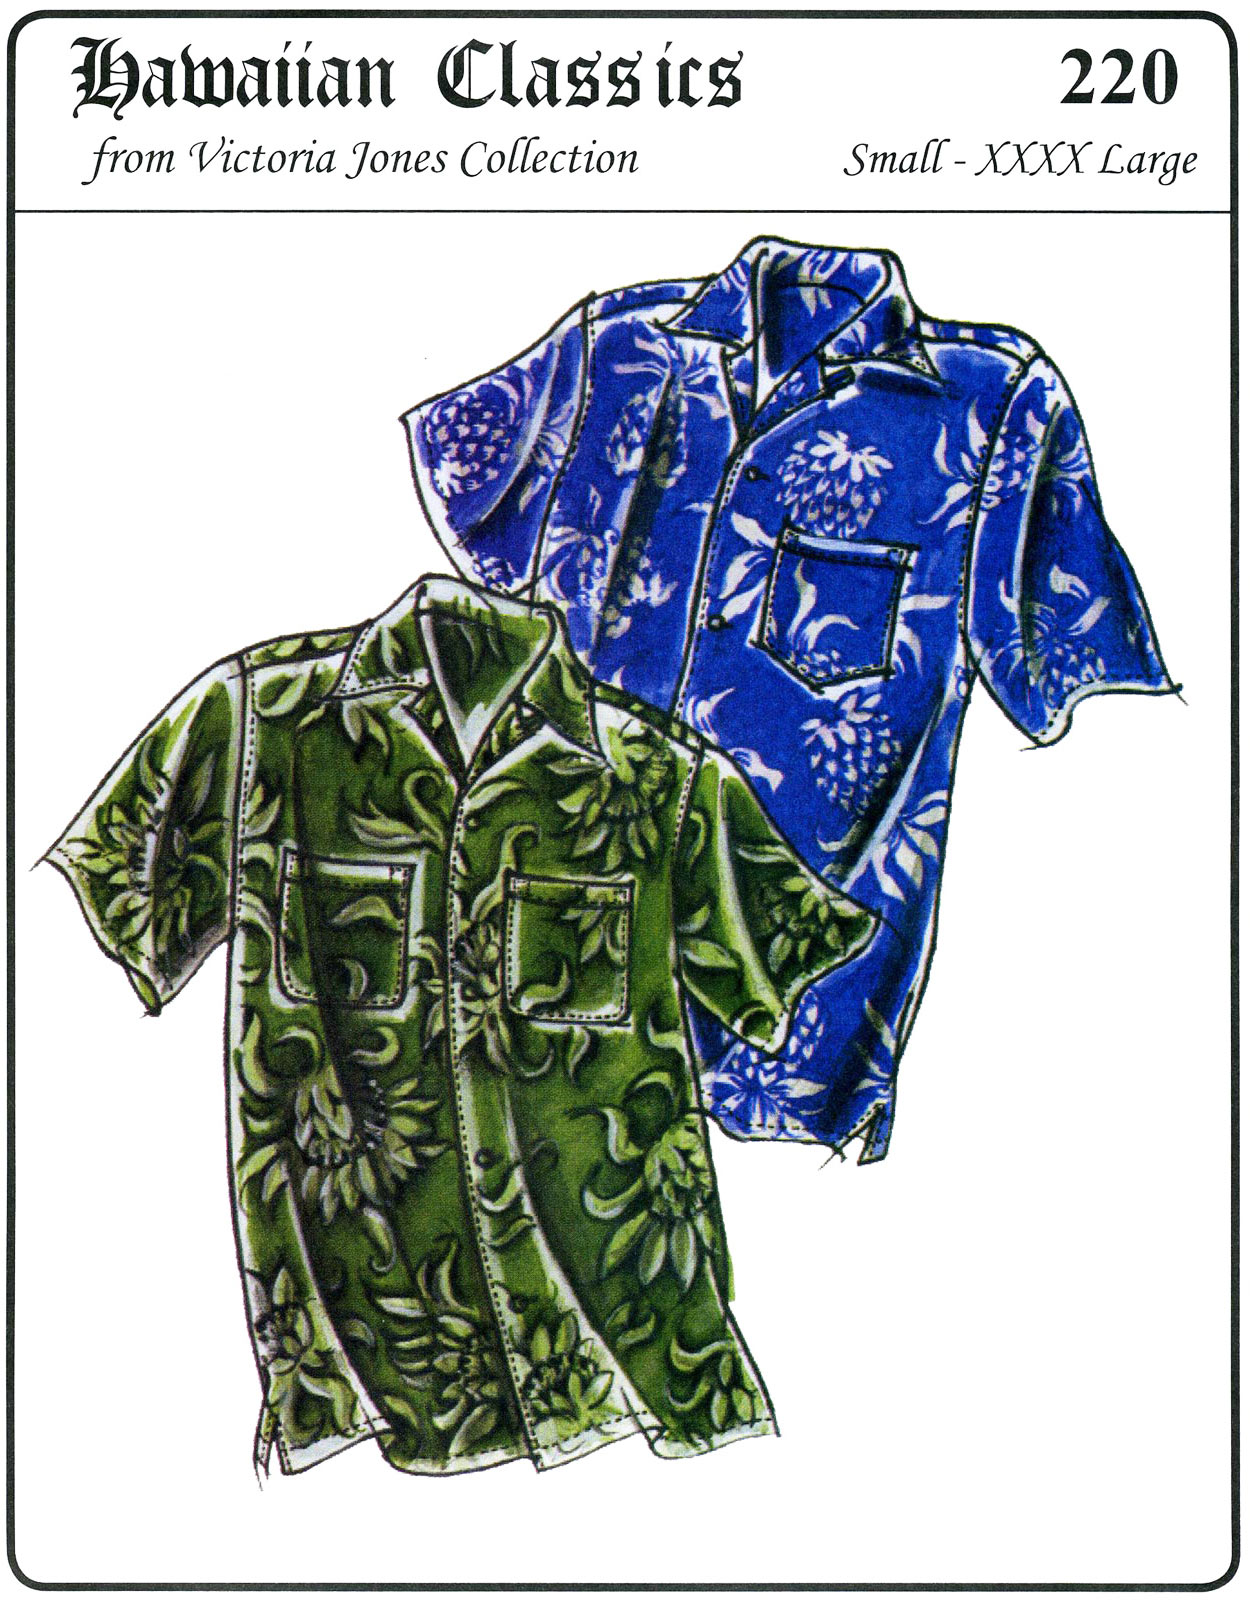 Hawaiian Shirt Patterns : hawaiian, shirt, patterns, Victoria, Jones, Collection, Men's, Hawaiian, Aloha, Shirt